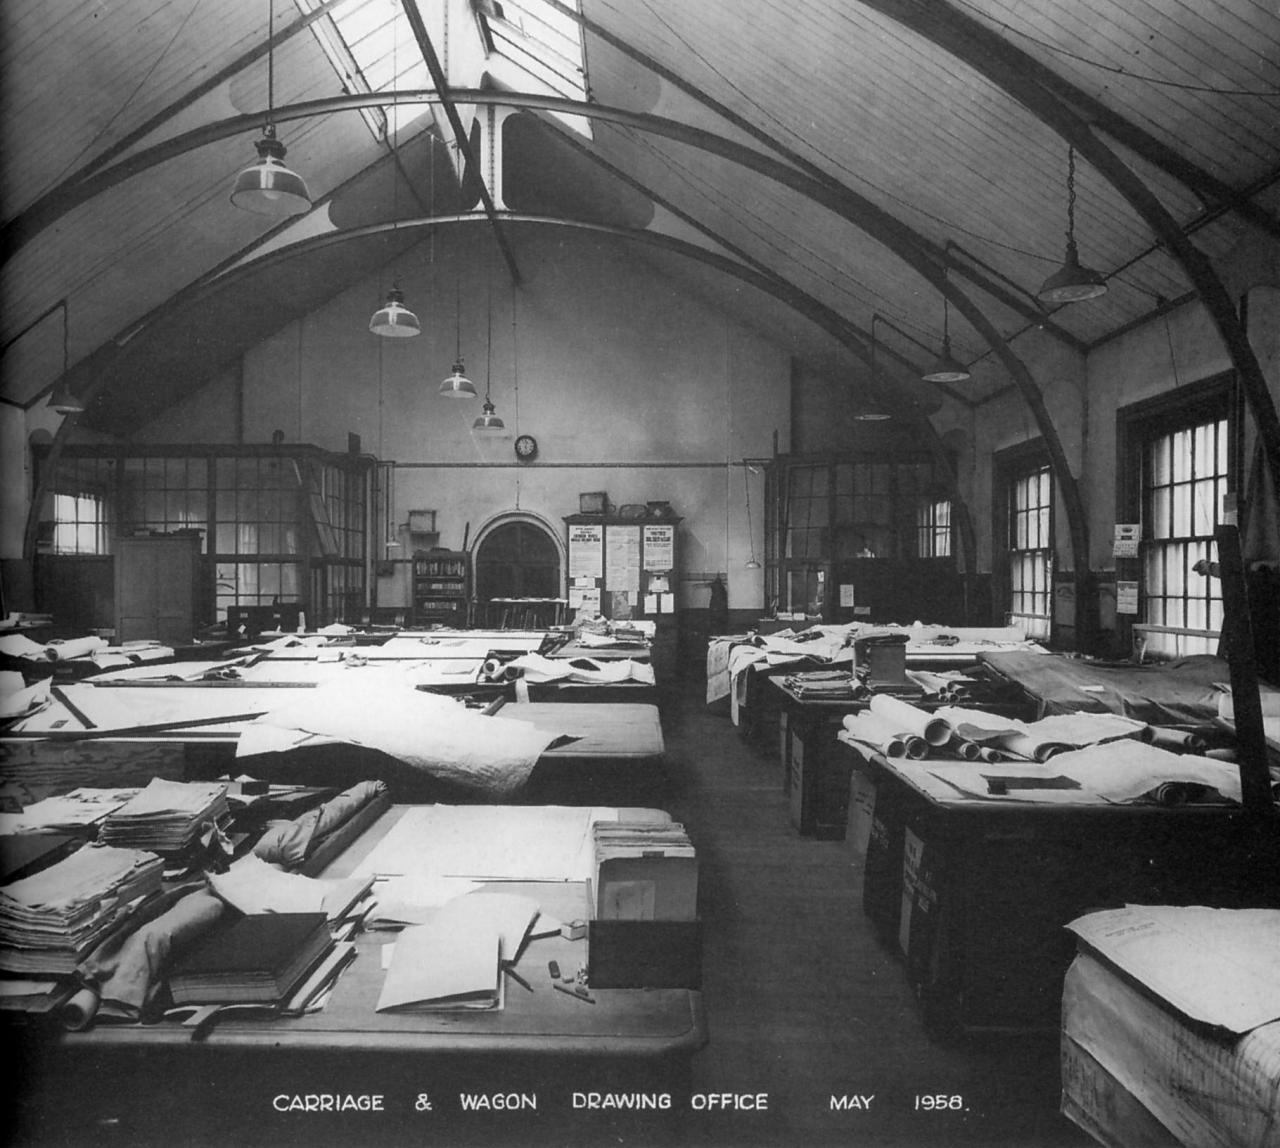 GWR, Carriage & Wagon works Drawing Office